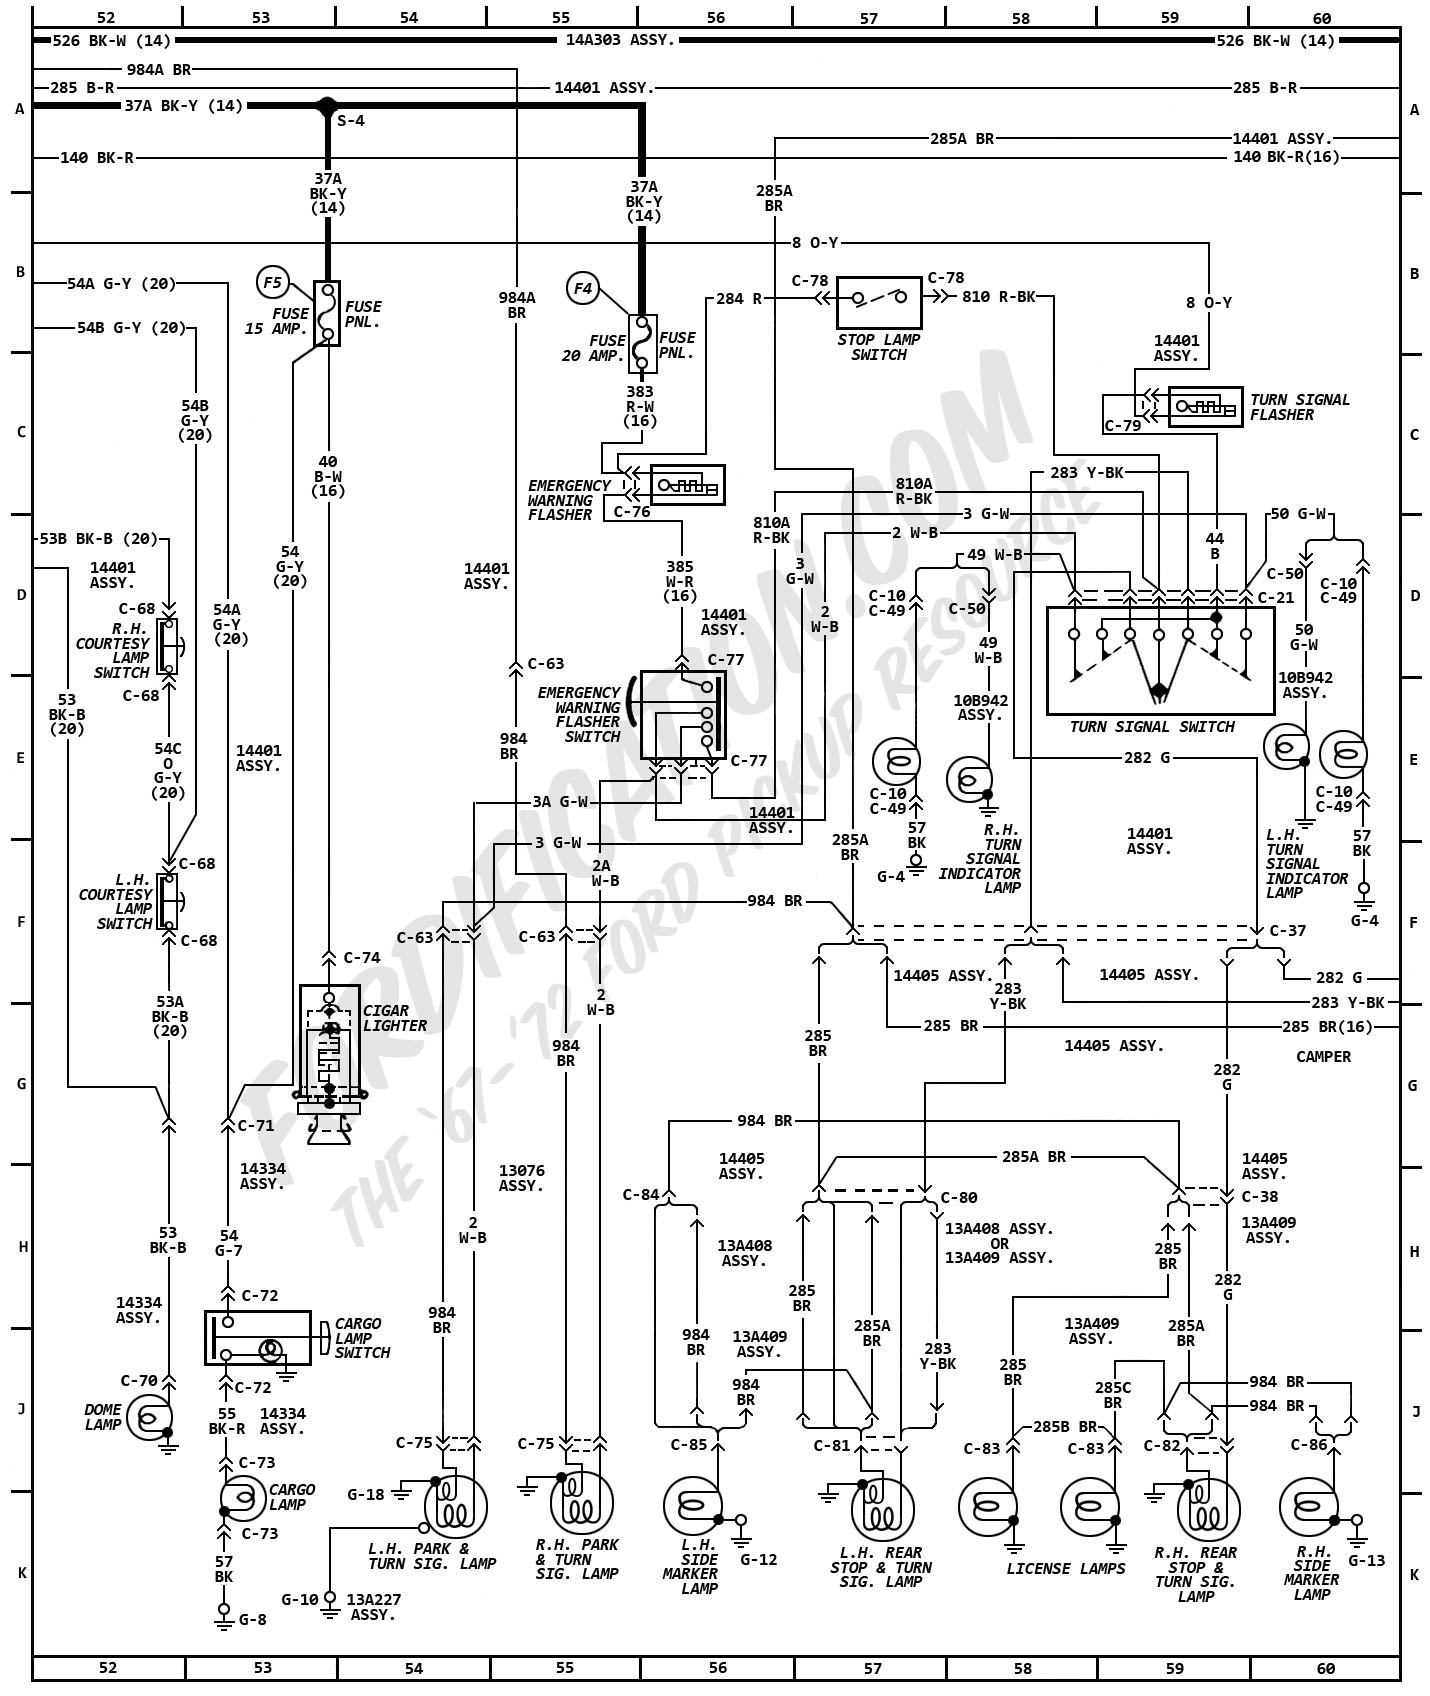 1972MasterWiring_06 1972 ford truck wiring diagrams fordification com  at bakdesigns.co